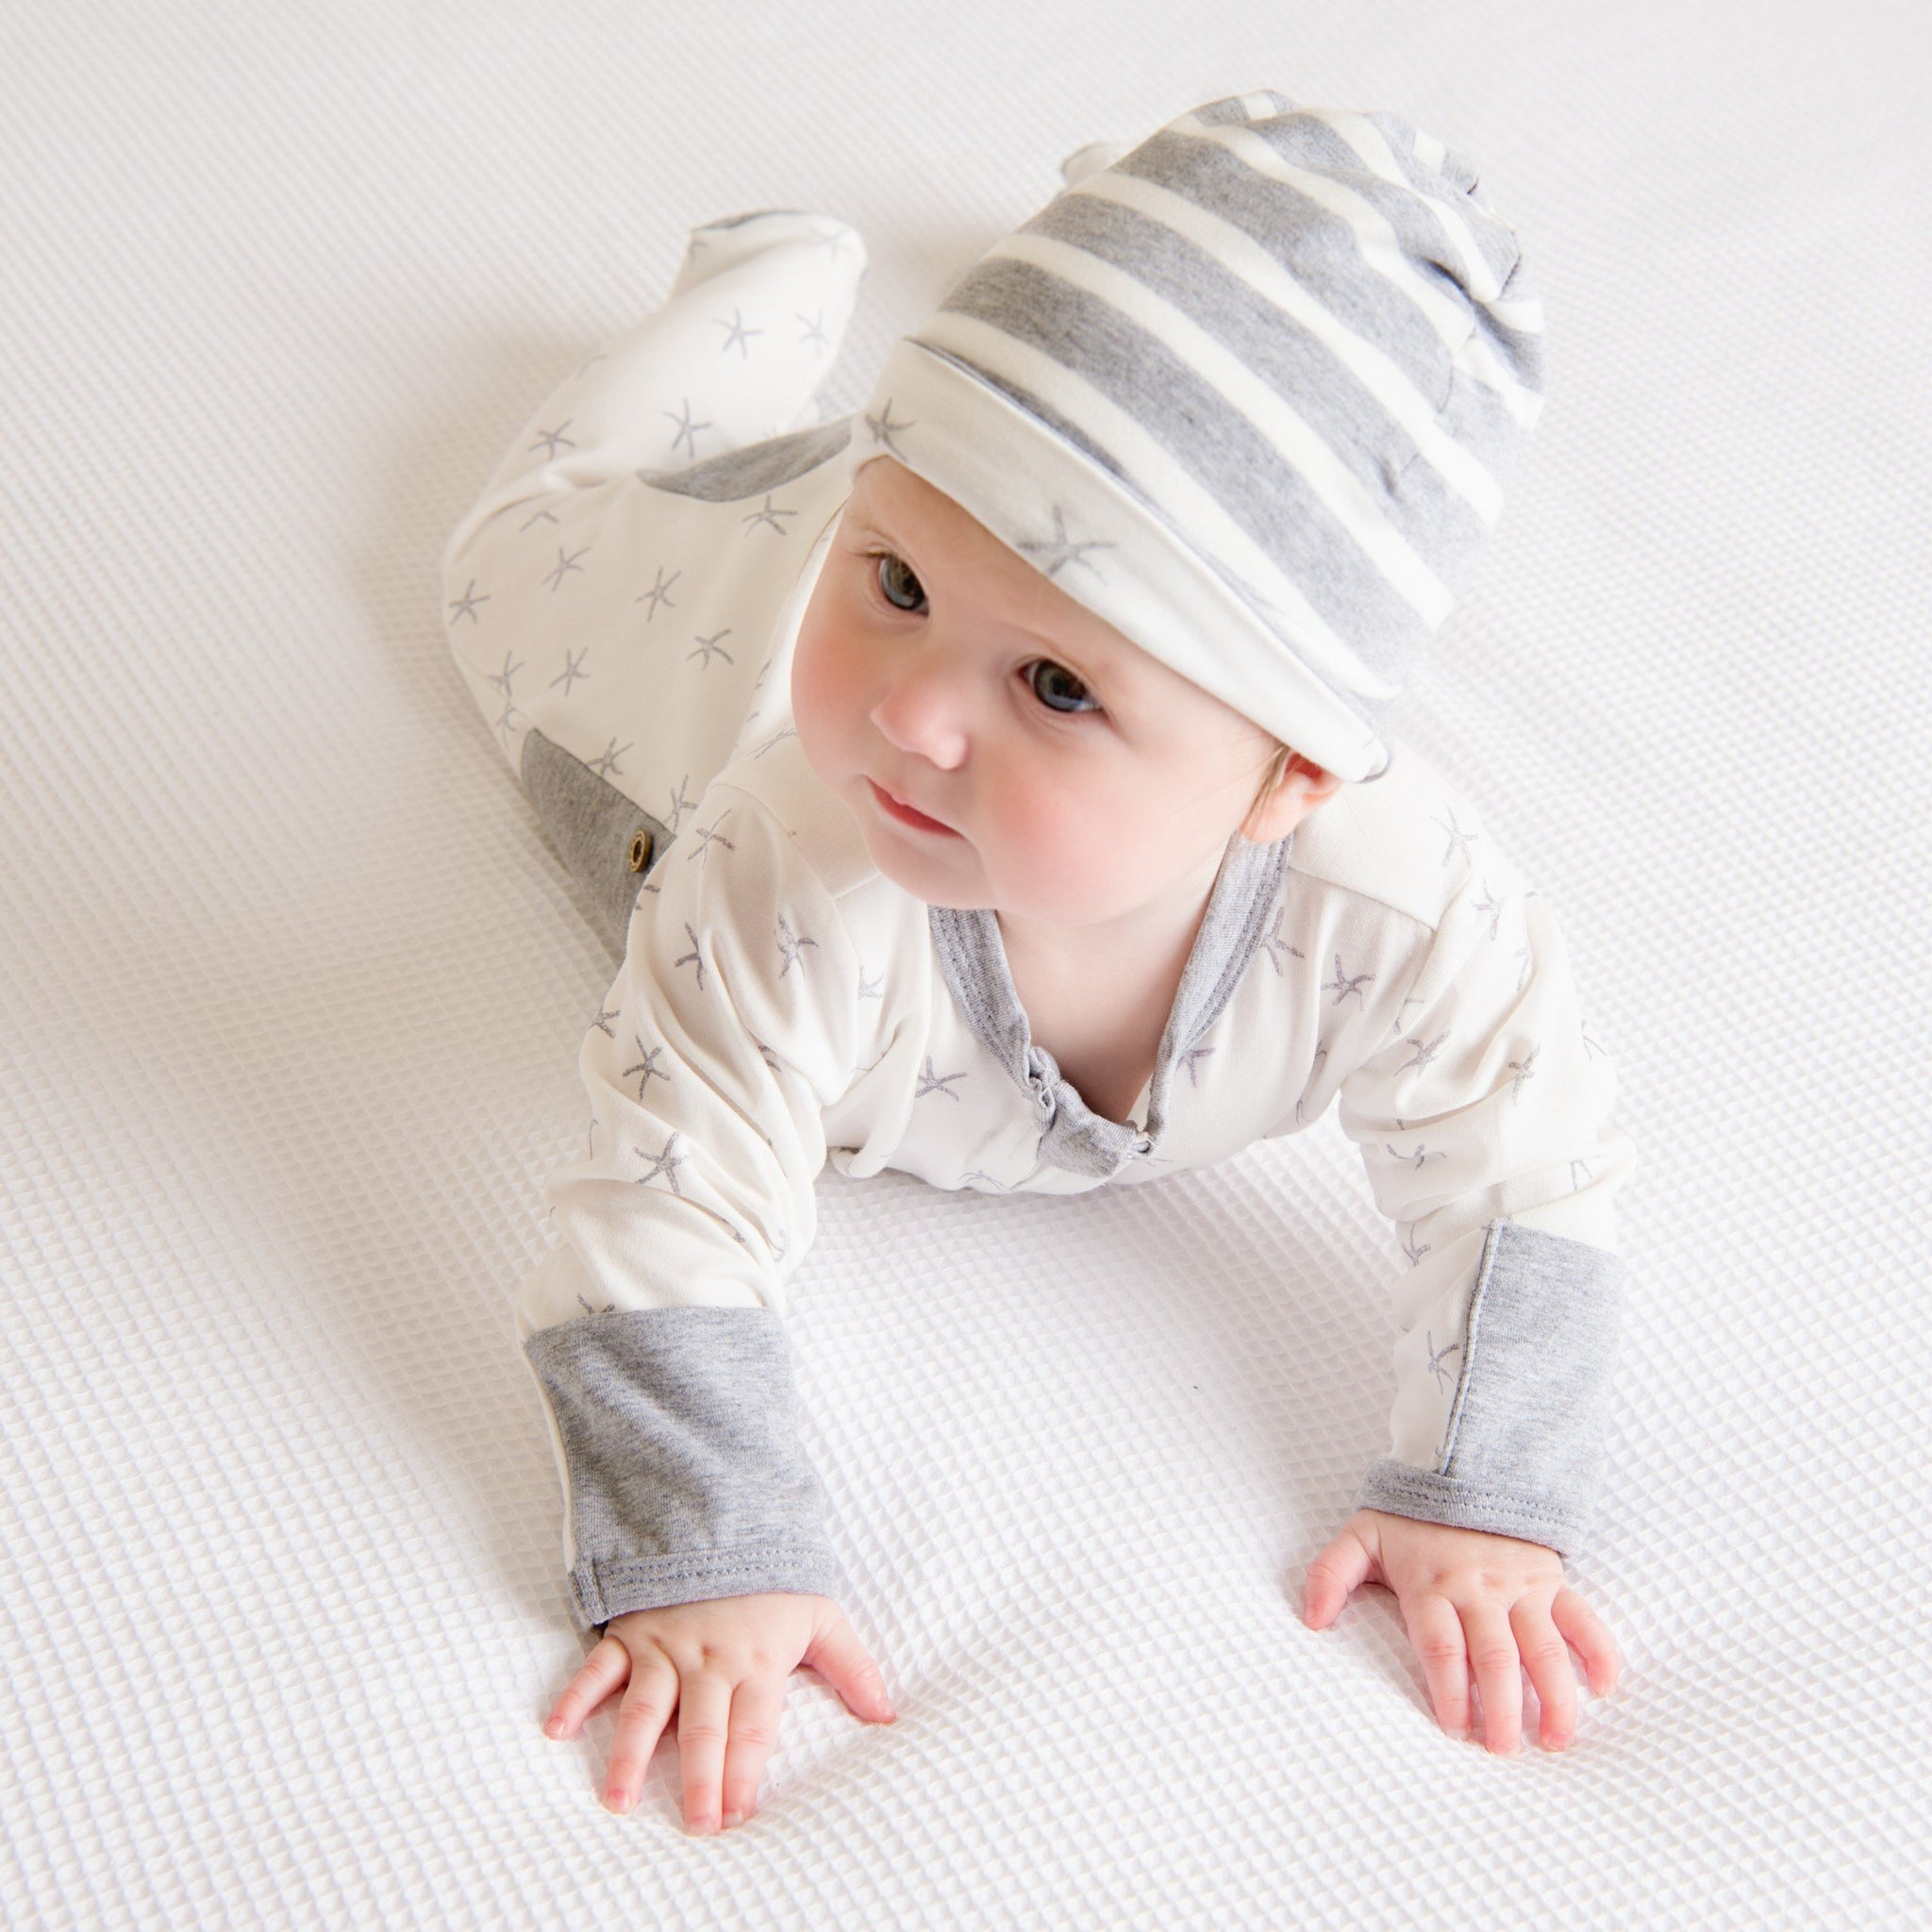 Wholesale Starter Pack - Grey Beanie-Wholesale Starter Pack-XS x 2 | S x 2 | M x 1-Li'l Zippers-Baby-Zip-Rompers